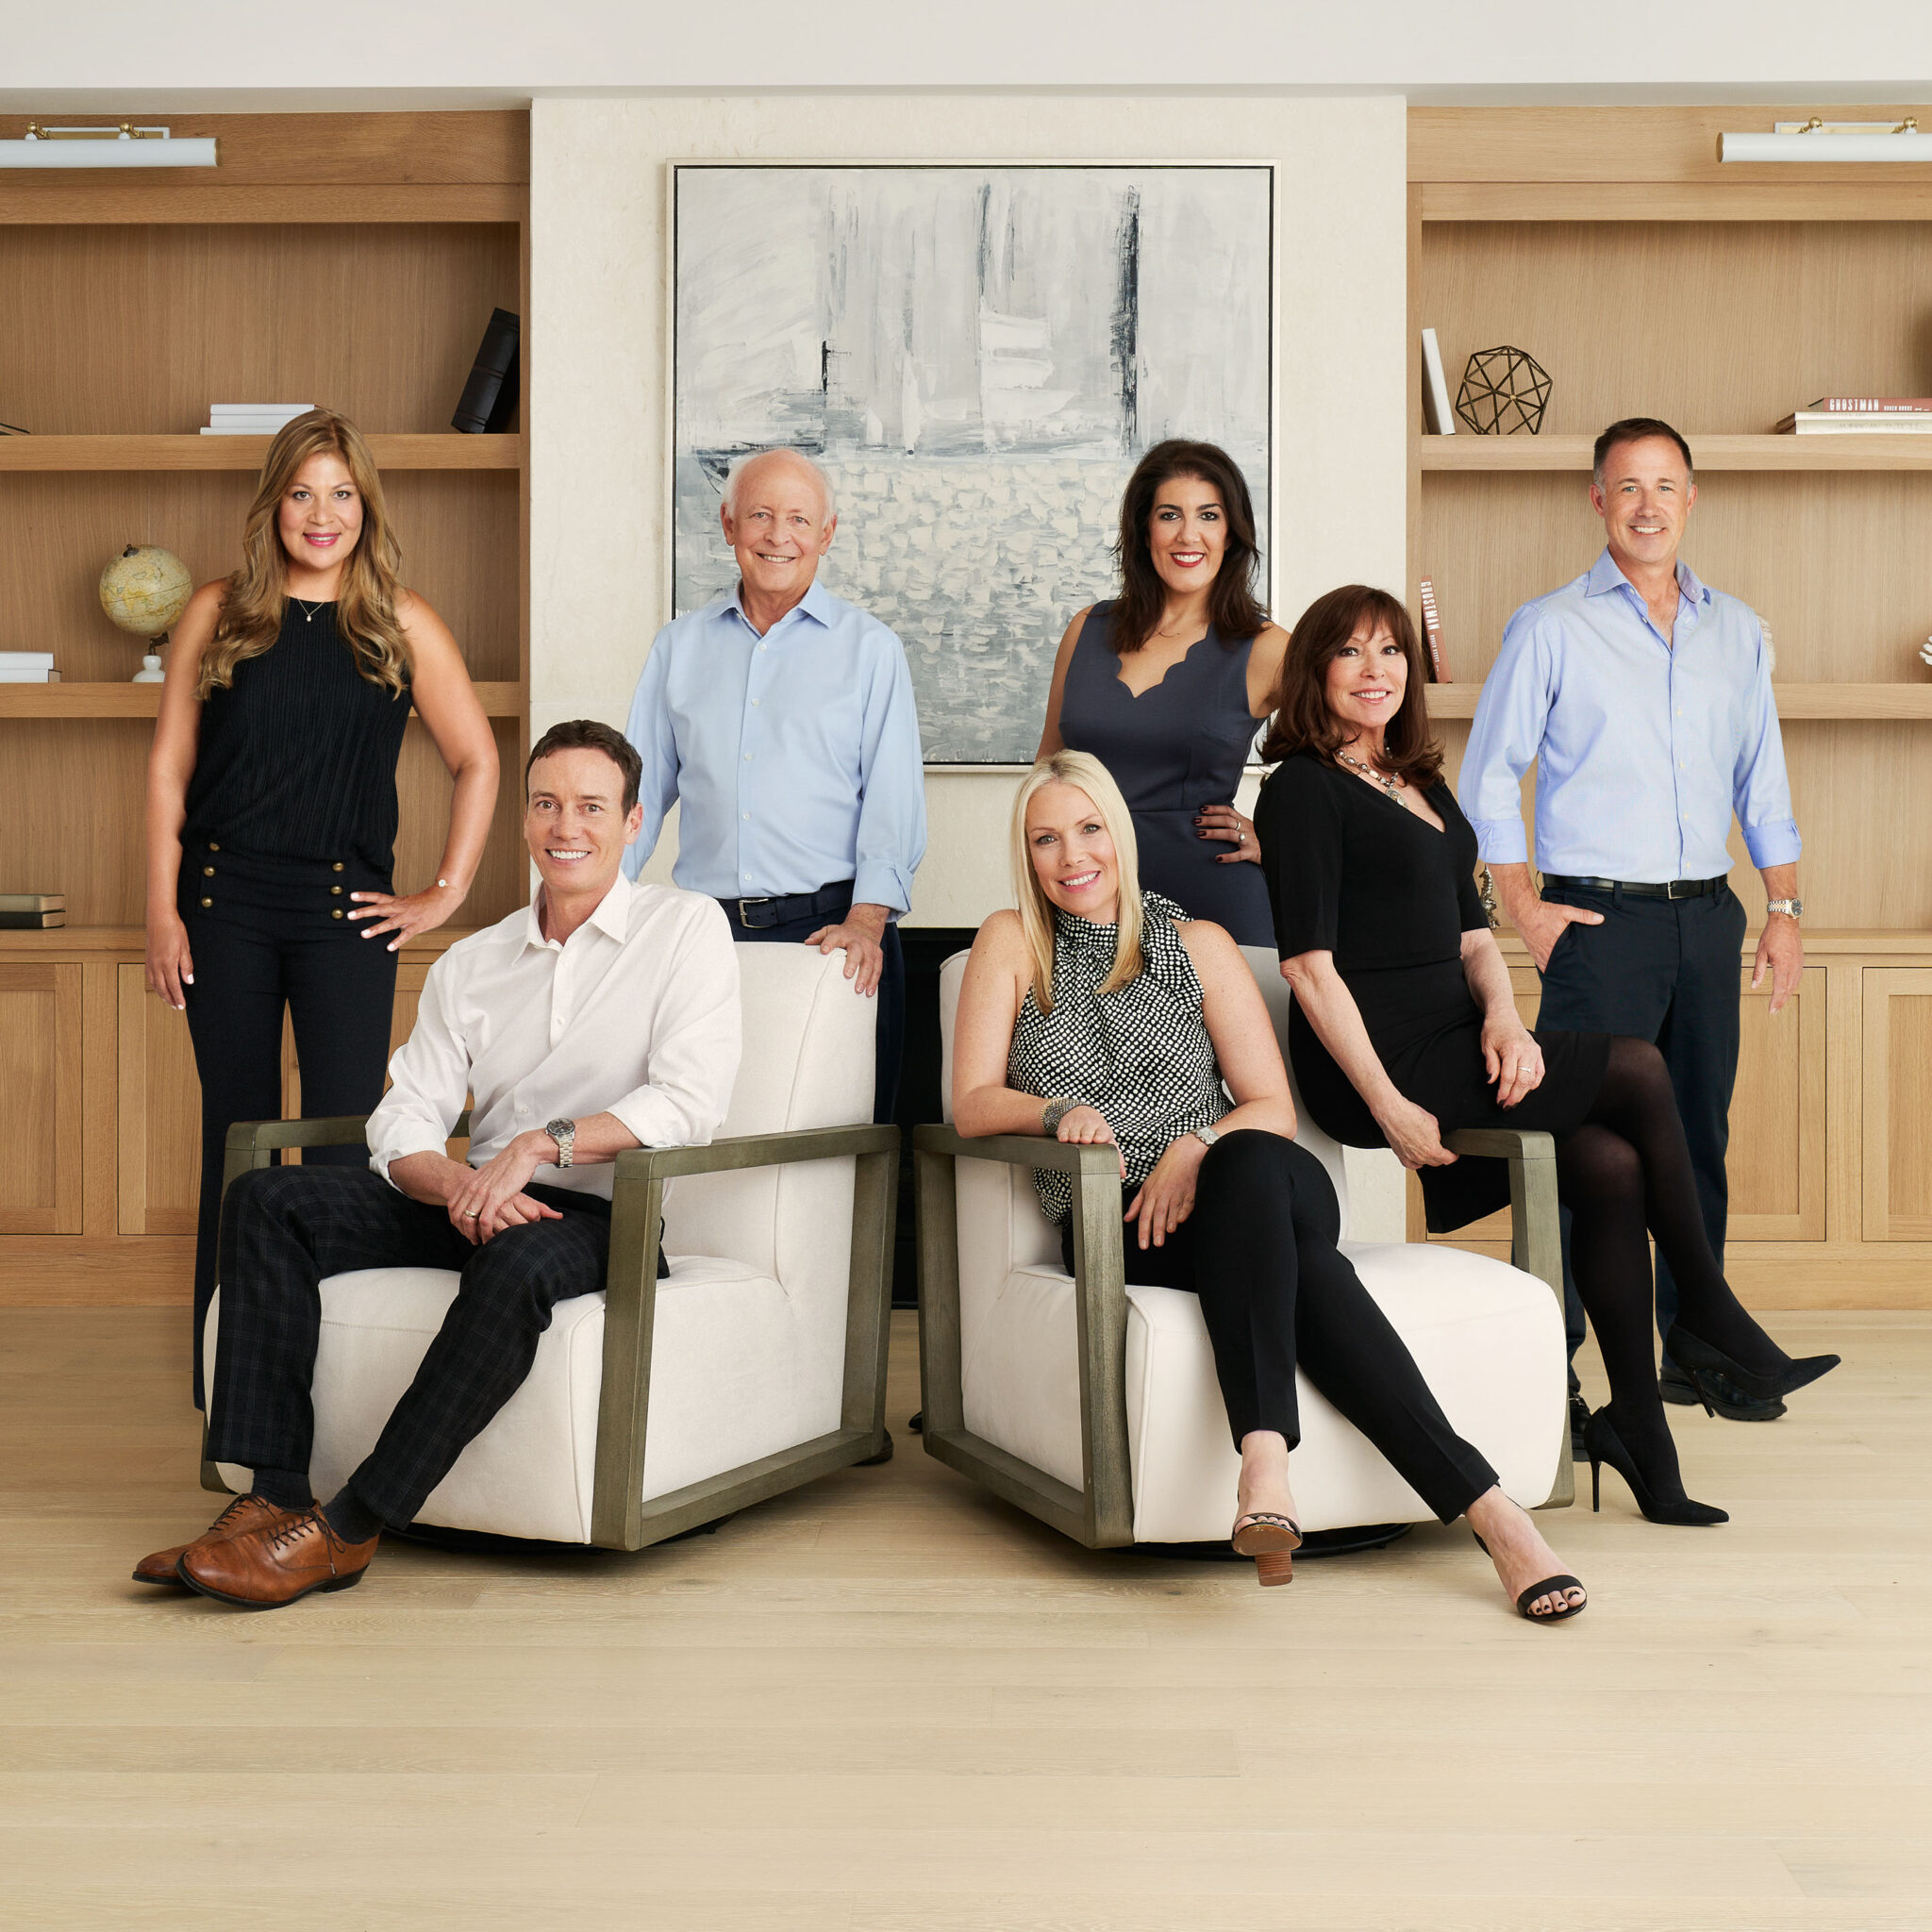 Edlen Team, Michael Edlen, Tatiana Weiss, Christina Wagner, Keith Craven, Jolie Hernandez, Christopher Watson, top agent, realtor, real estate, realtor team, real estate agent, Pacific Palisades, Santa Monica, Brentwood, Los Angeles, properties